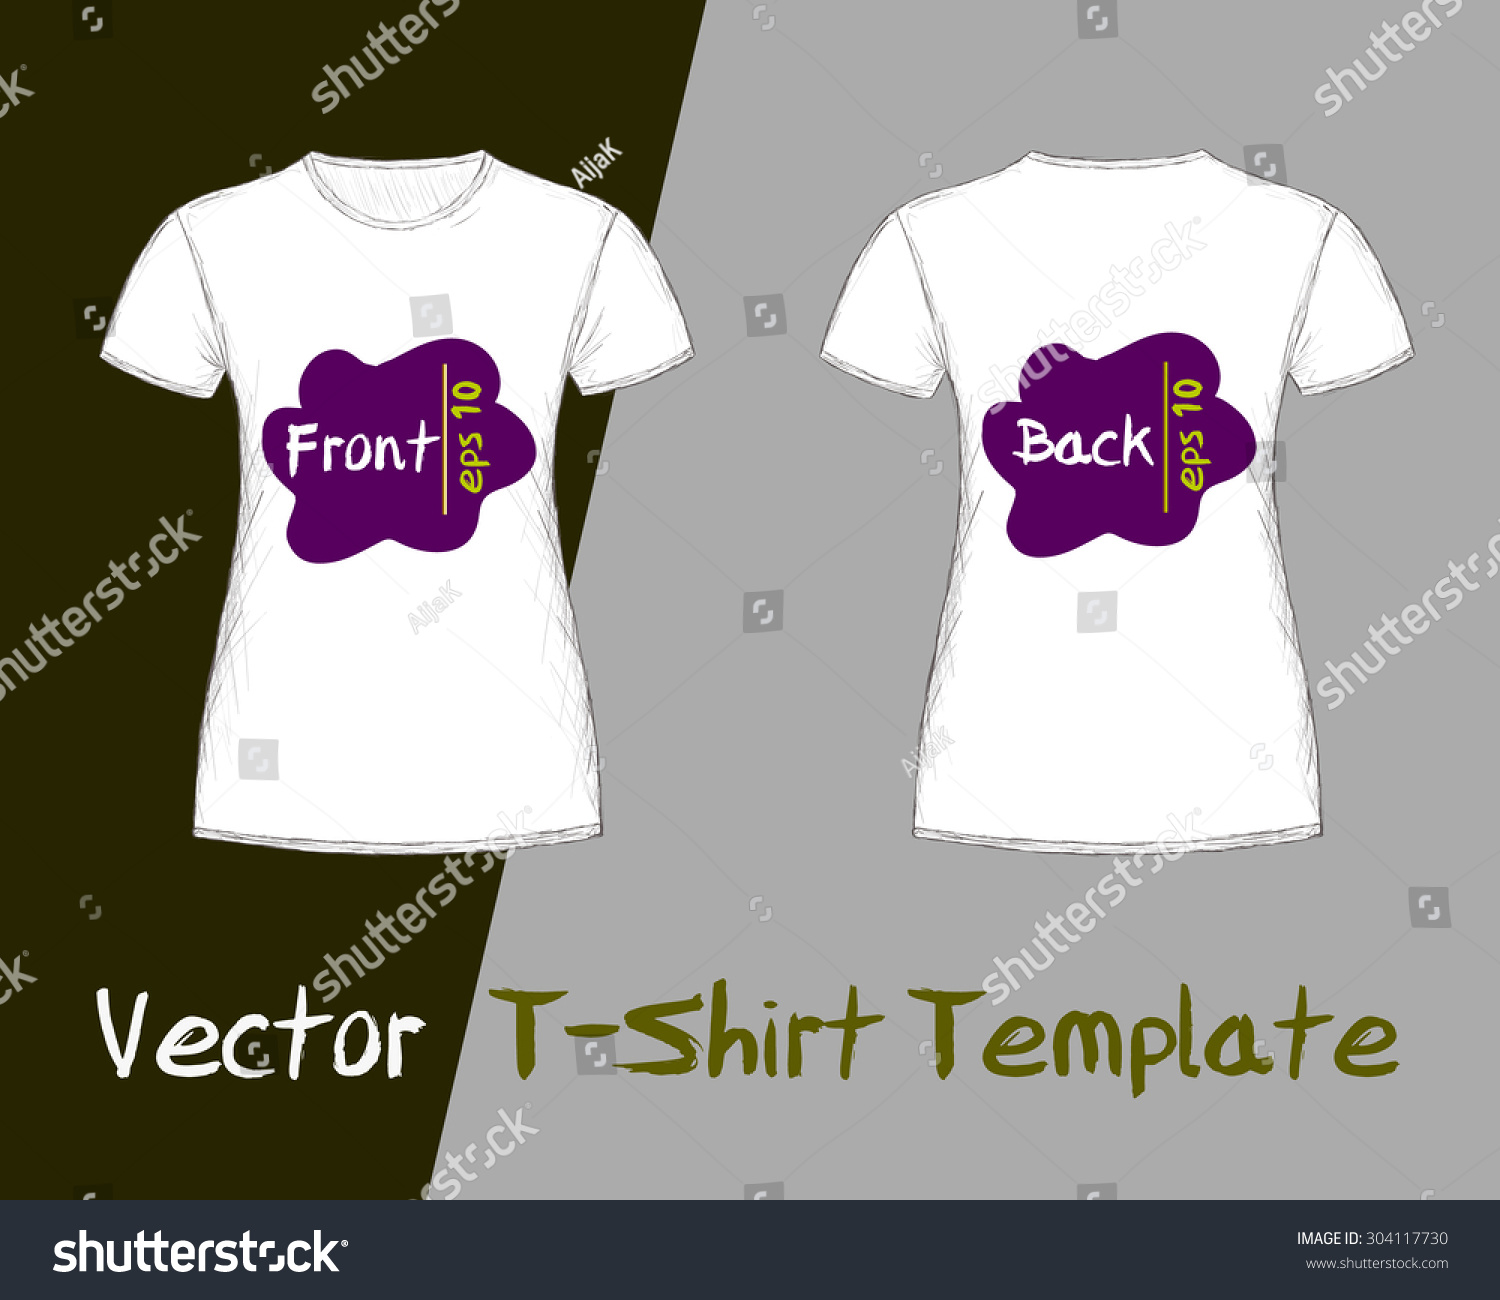 Index.php/admin/Cms_Wysiwyg/directive - Design T Shirt Easy Download Download Image Design T Shirt Store Index Php Admin Cms_wysiwyg Directive